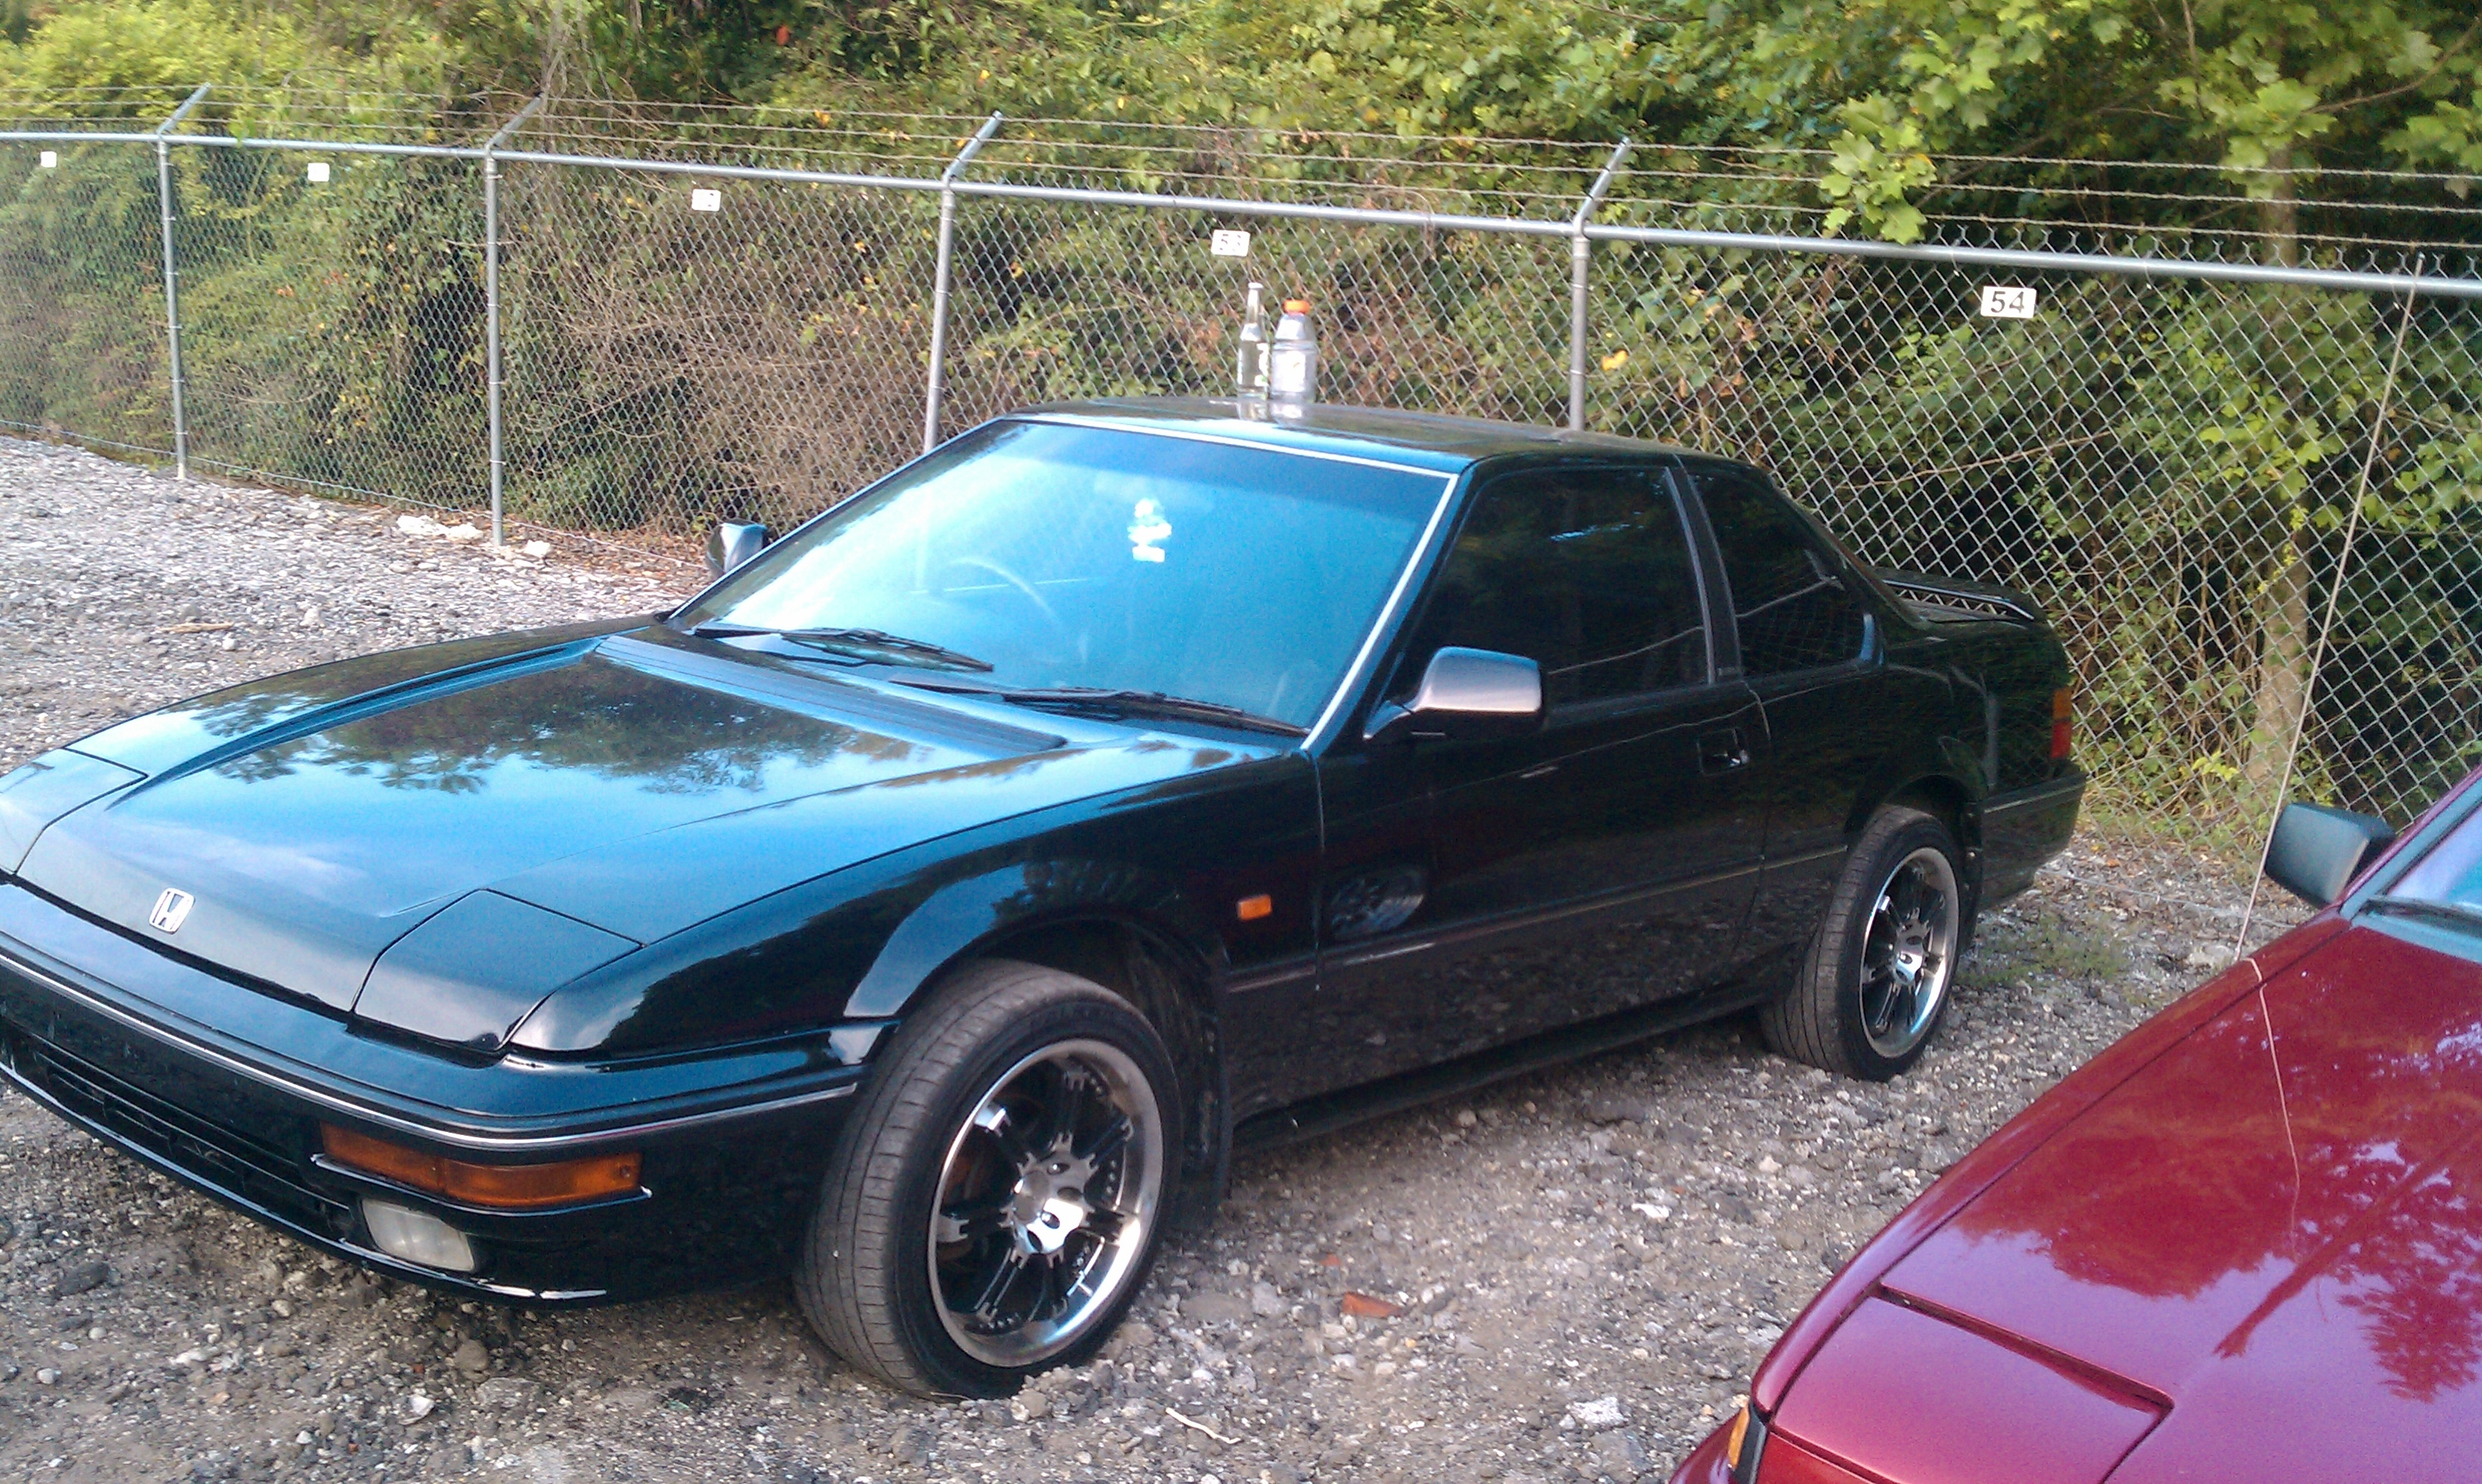 Another Livesforspeed 1989 Honda Prelude post... - 14920714